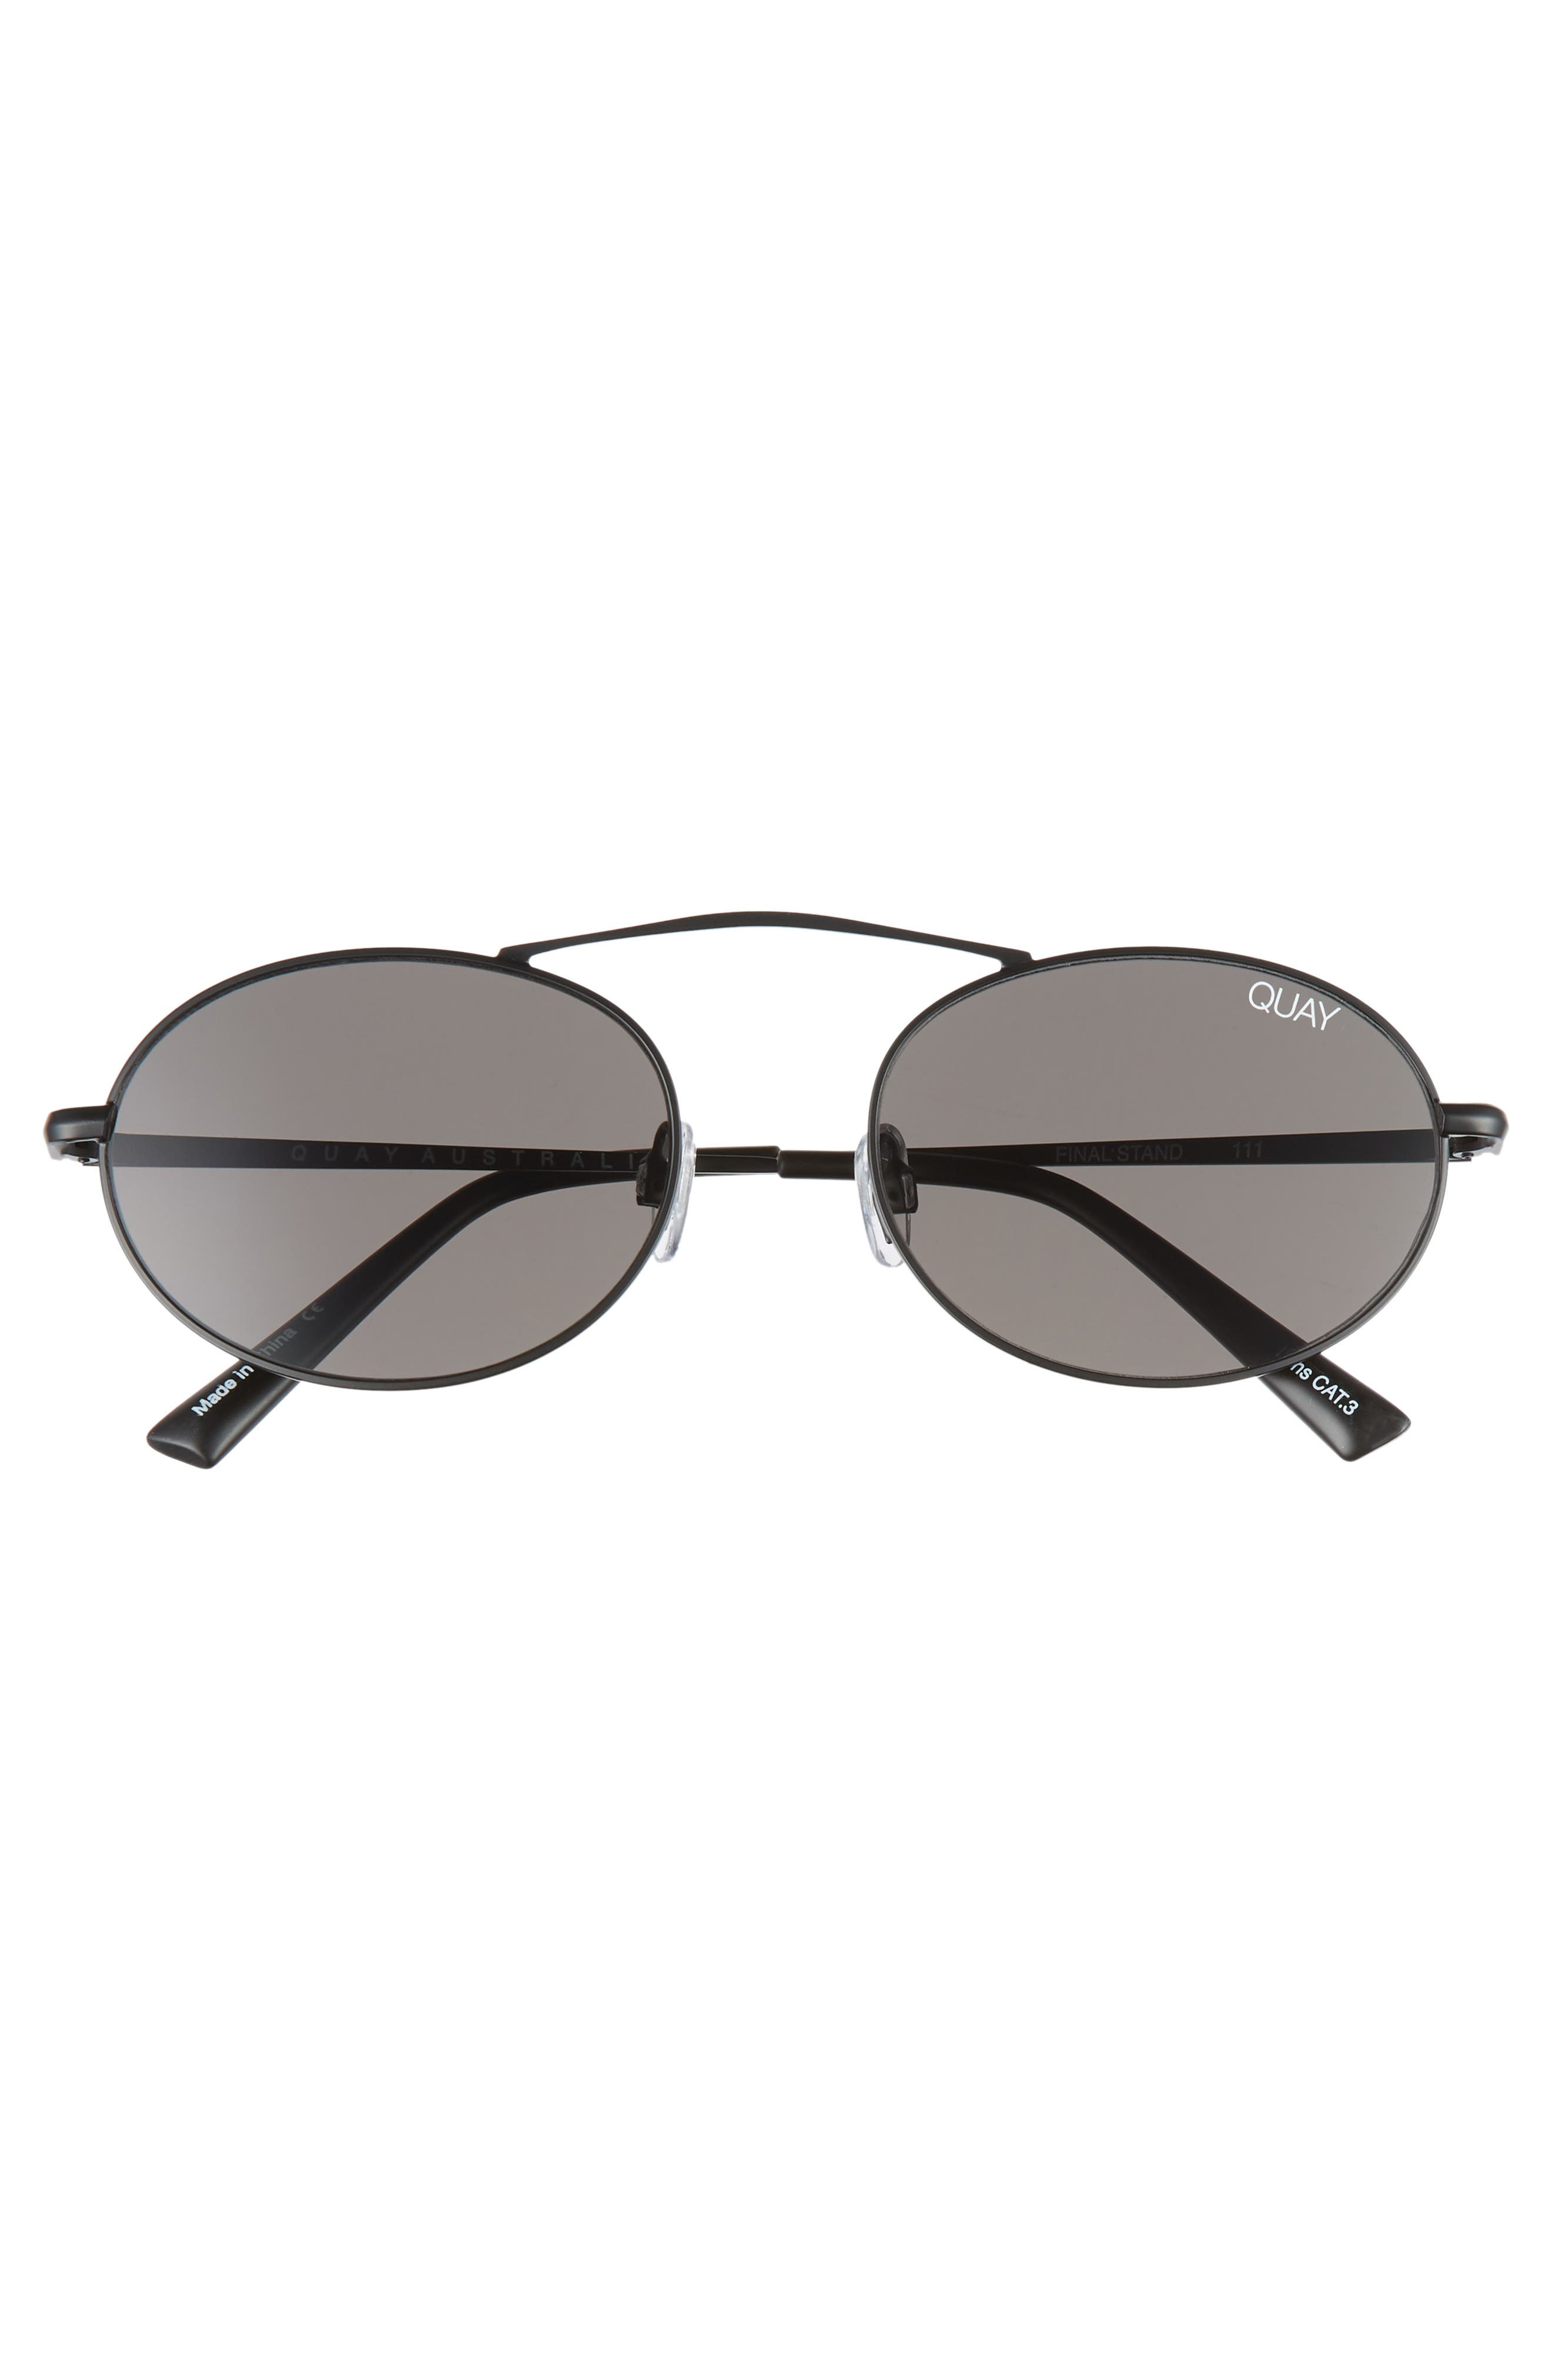 x Finders Keepers Final Stand 53mm Round Sunglasses,                             Alternate thumbnail 3, color,                             BLACK/ SMOKE